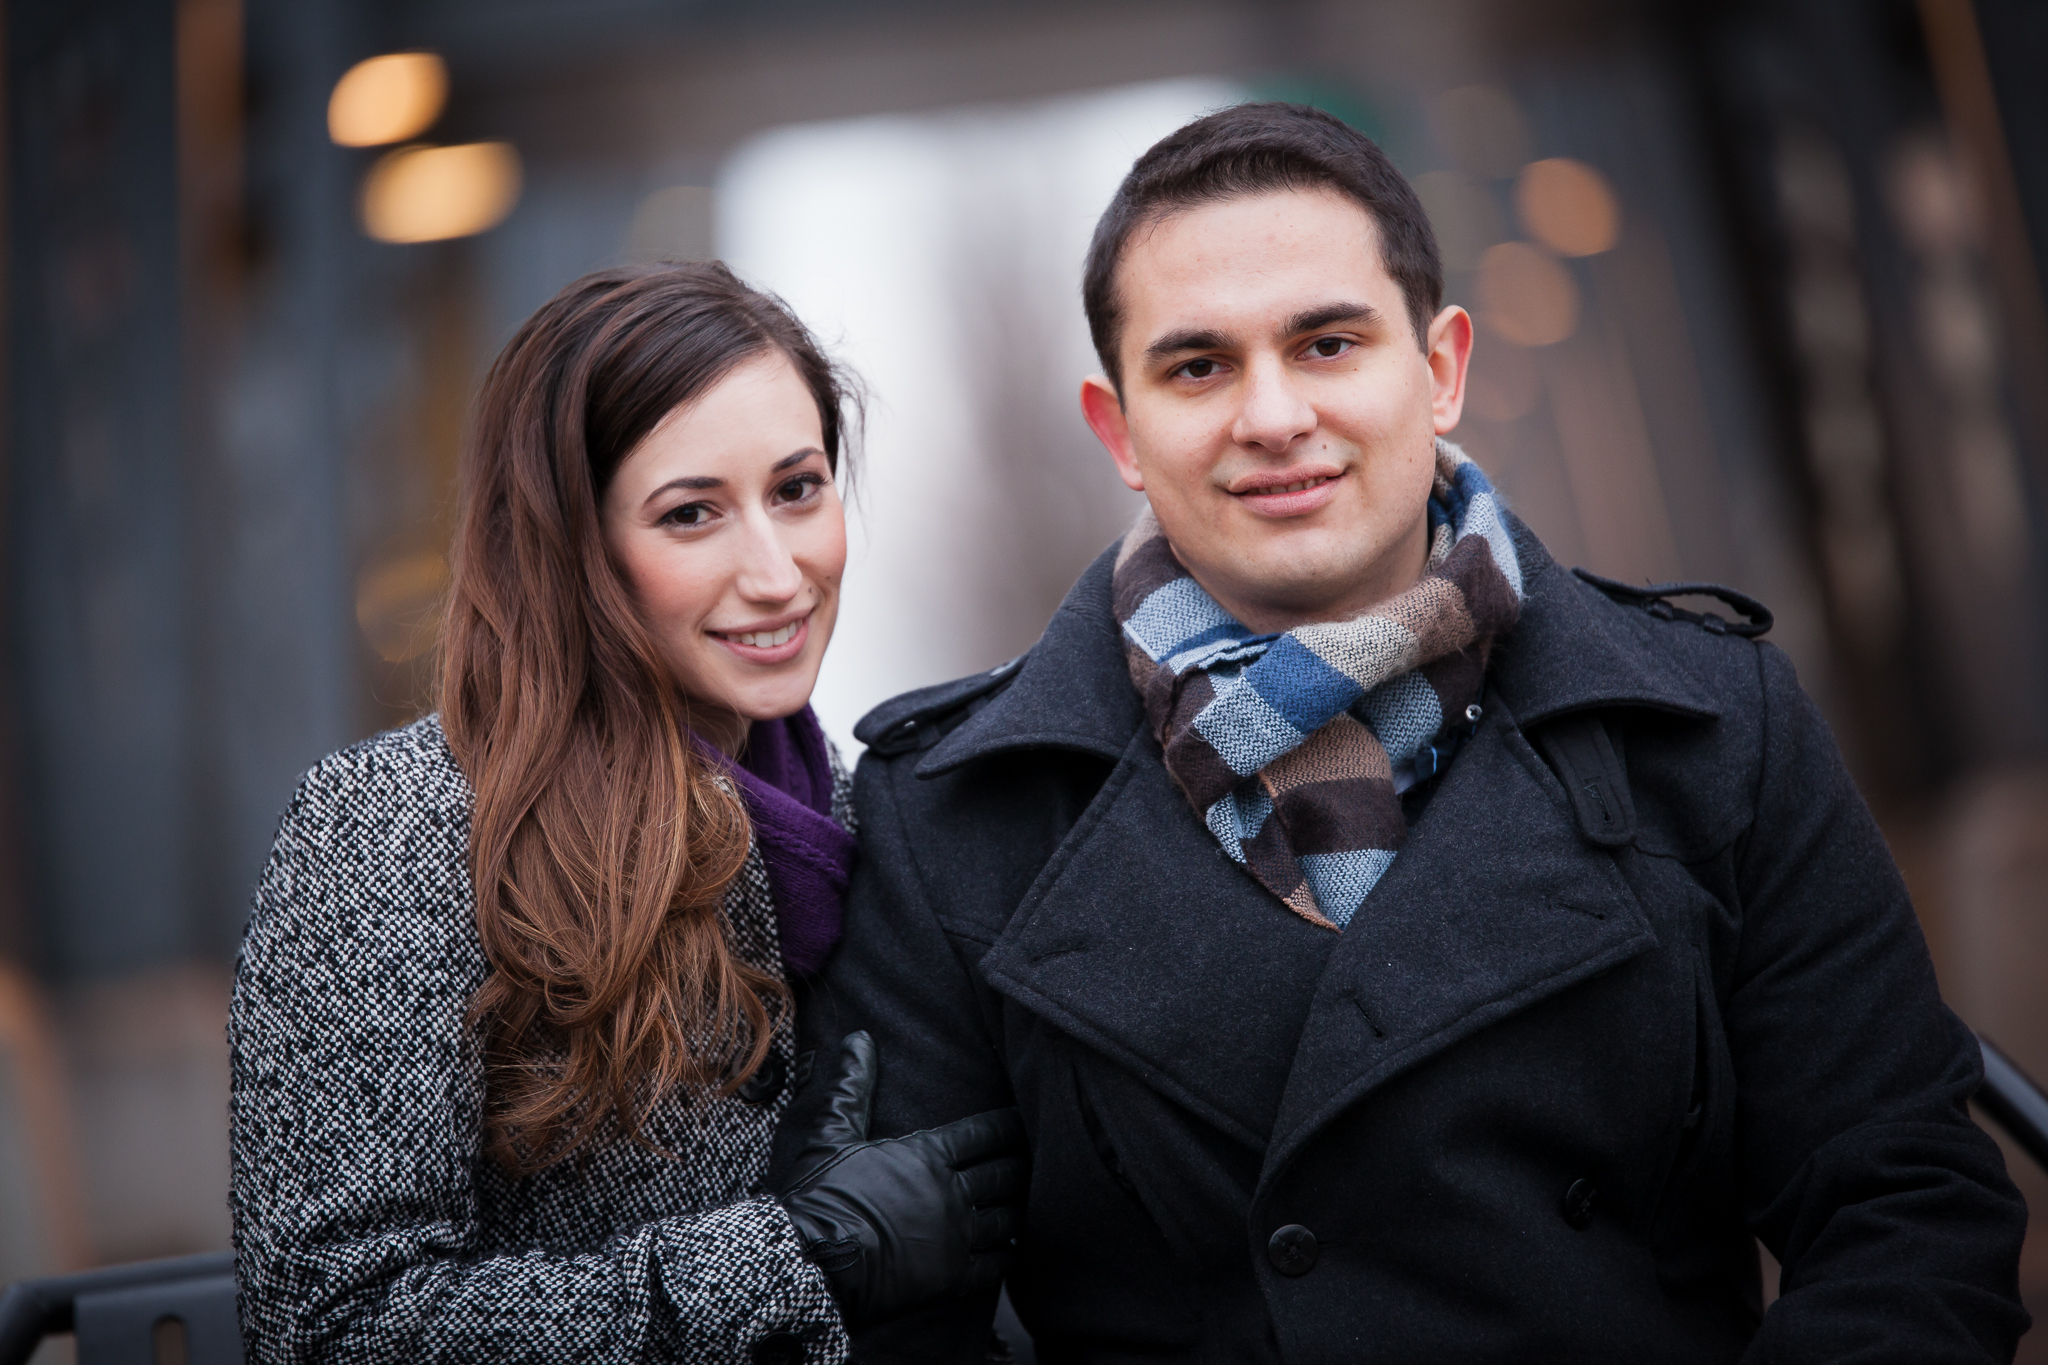 Toronto Wedding Photography - Kristina & Gabe Esession-31.jpg